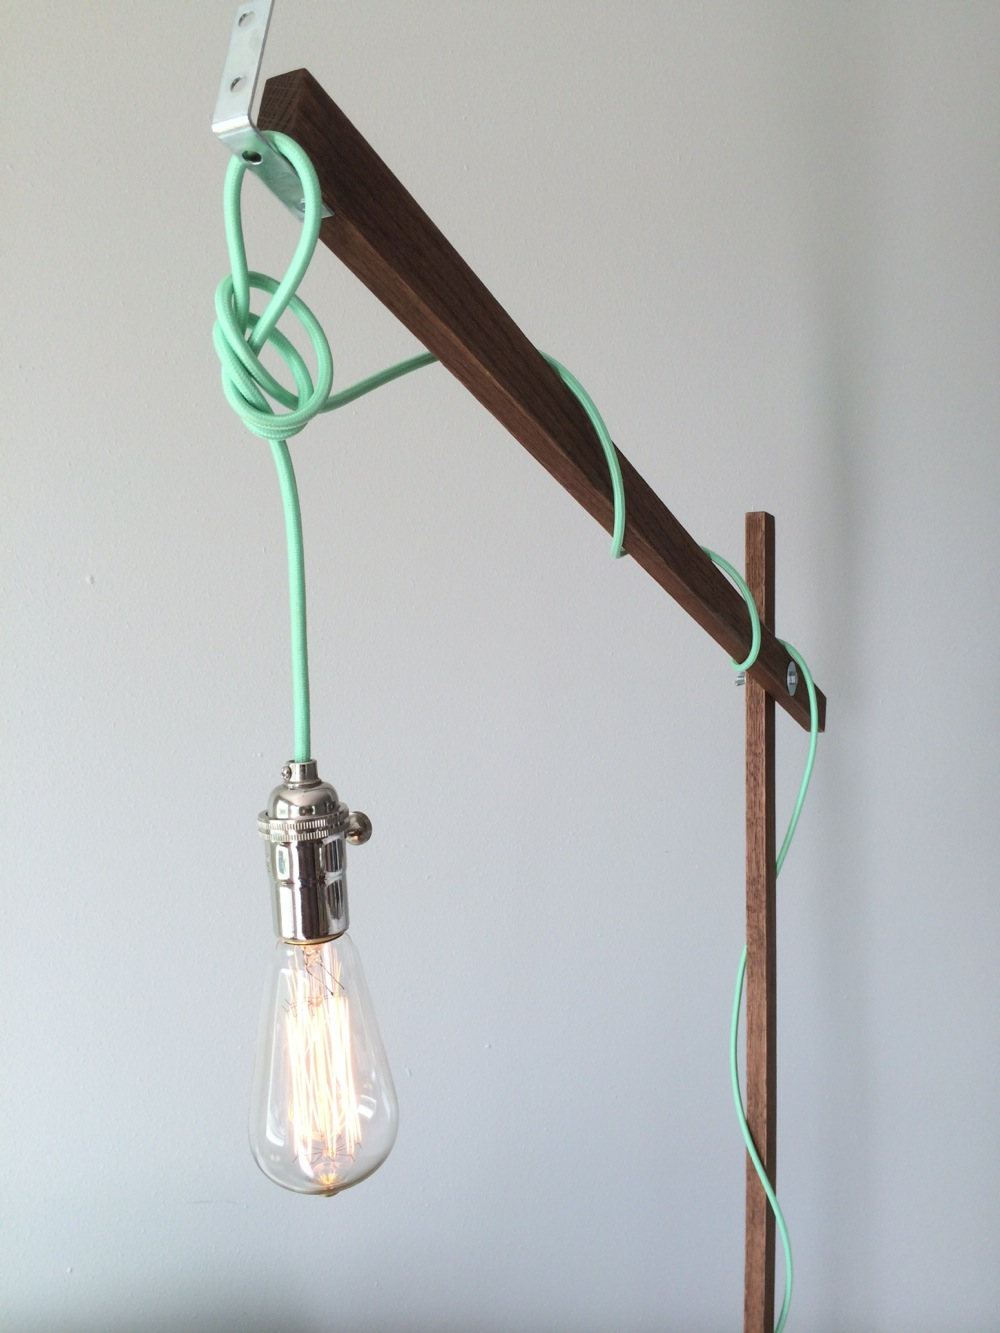 Light up the living room with these 25 diy floor lamps img 4462 solutioingenieria Choice Image